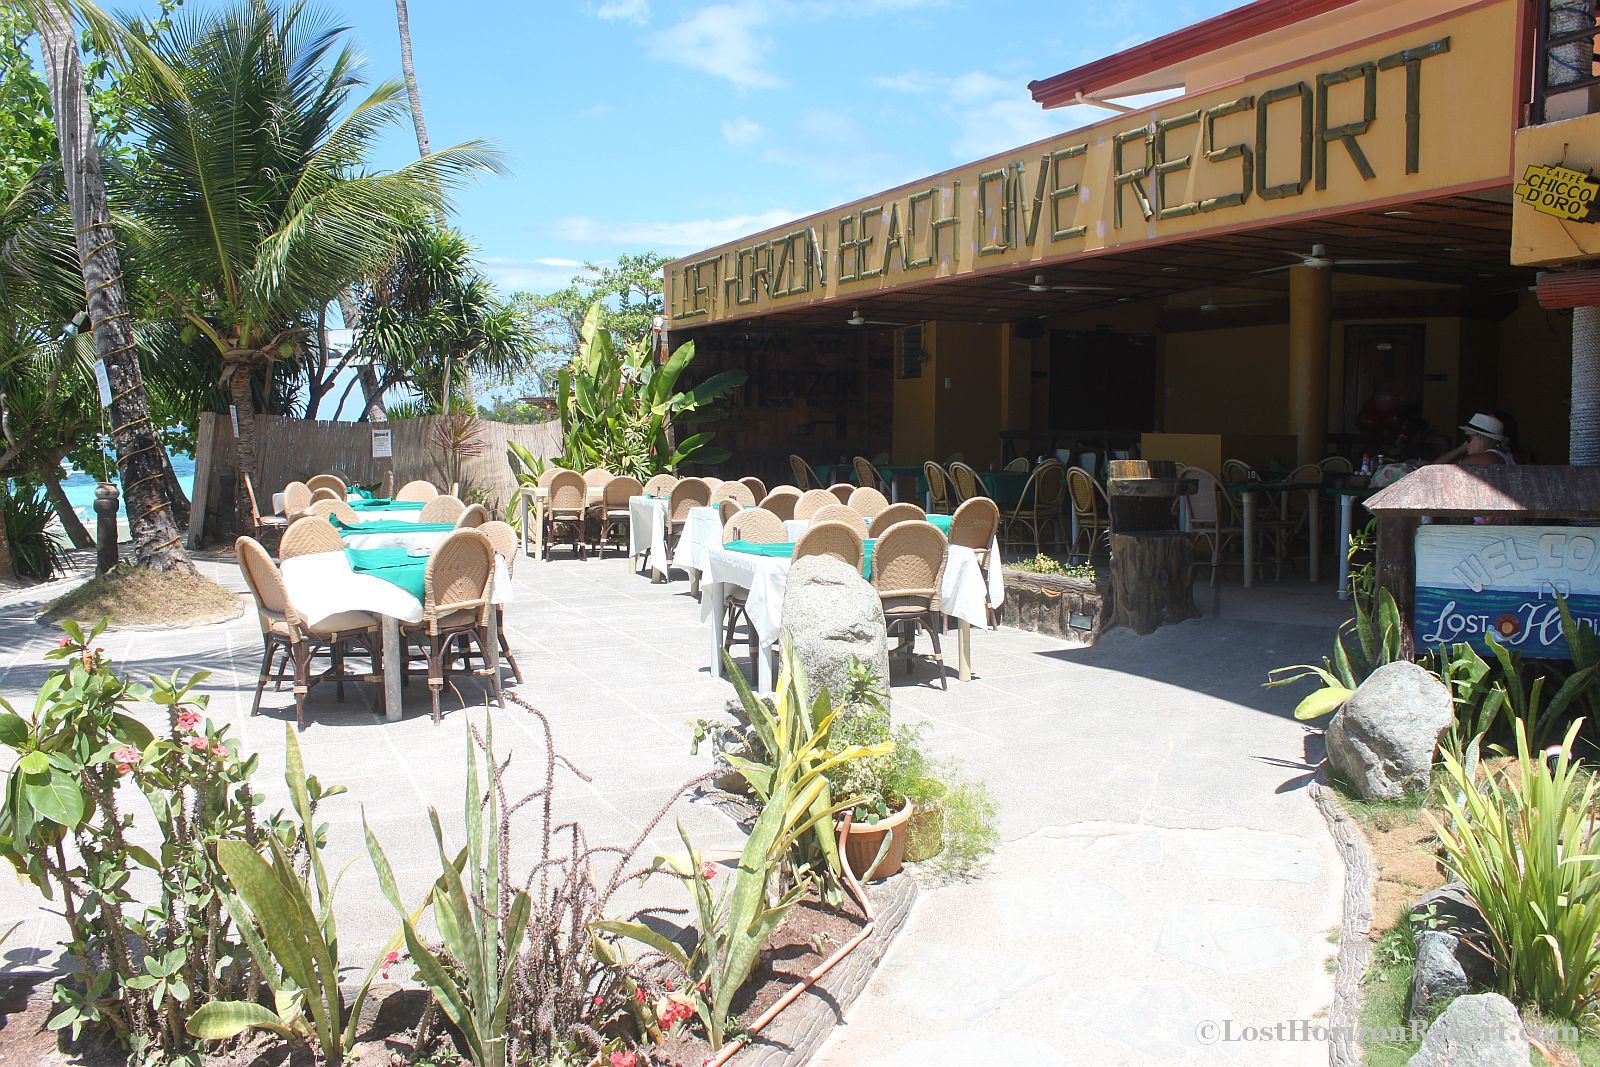 Lost Horizon Beach Resort in Alona Beach Bohol Philippines